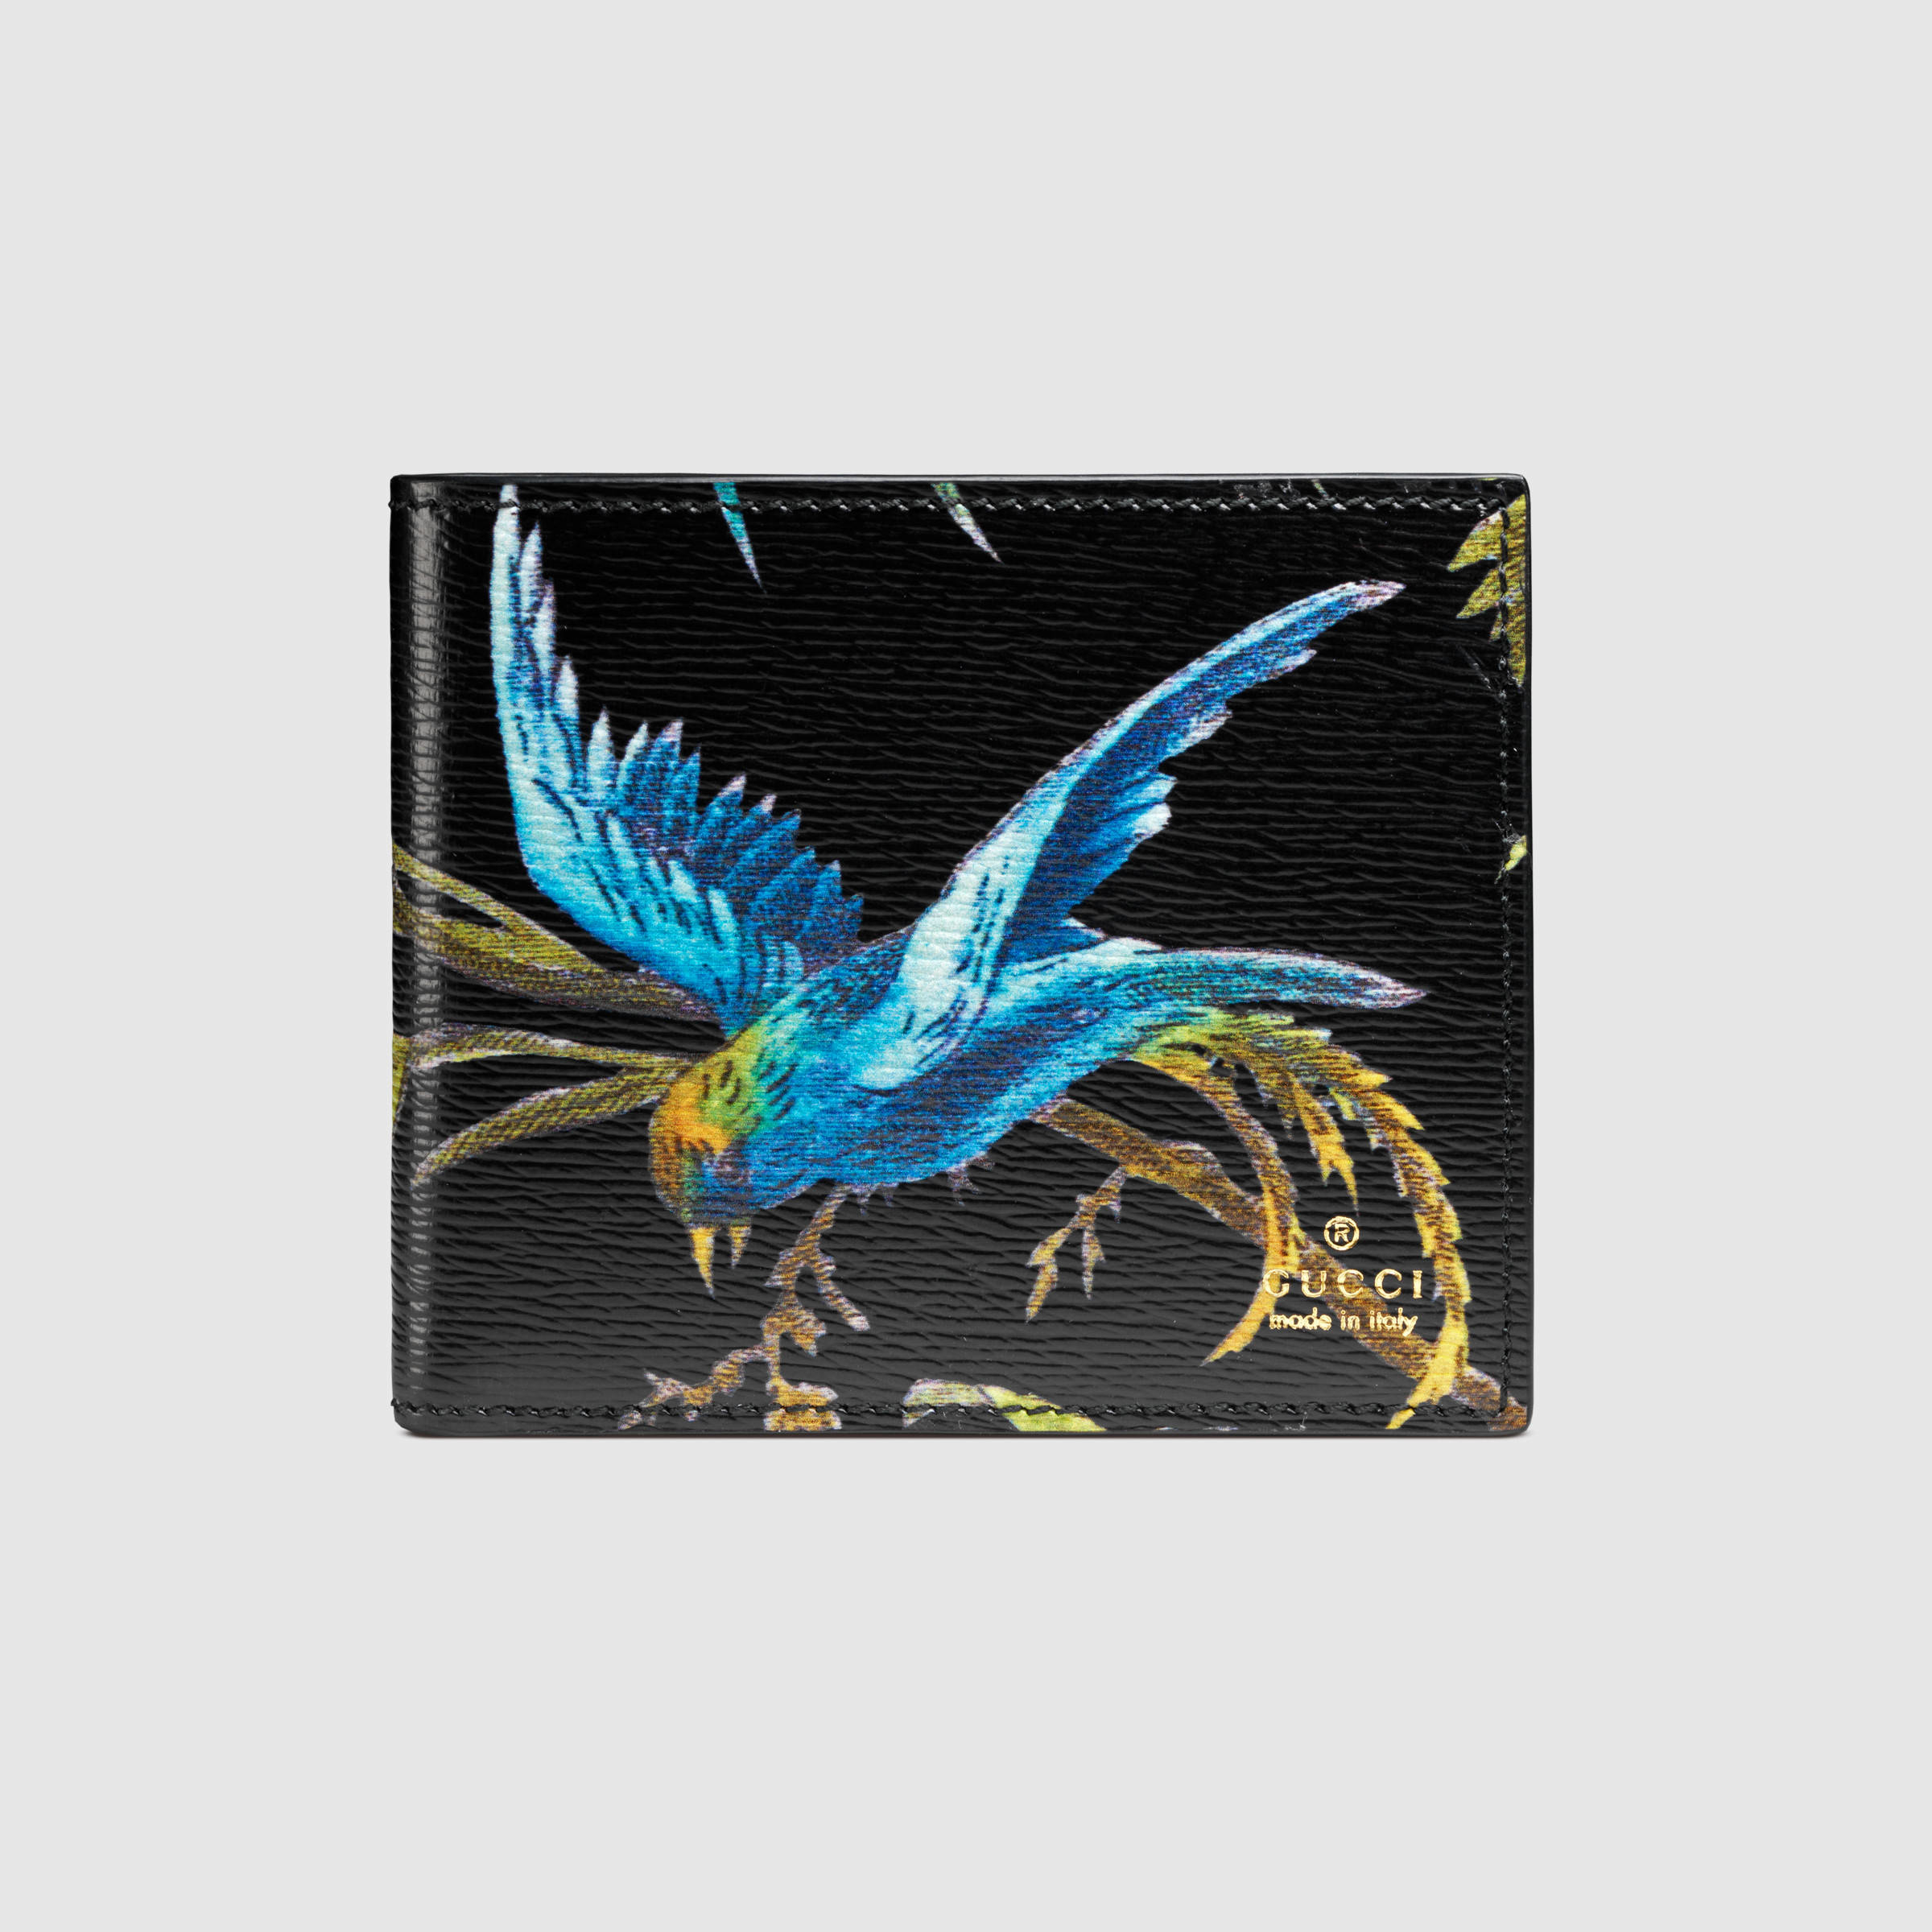 c9174cd501fa83 Gucci Tropical Print Leather Wallet for Men - Lyst